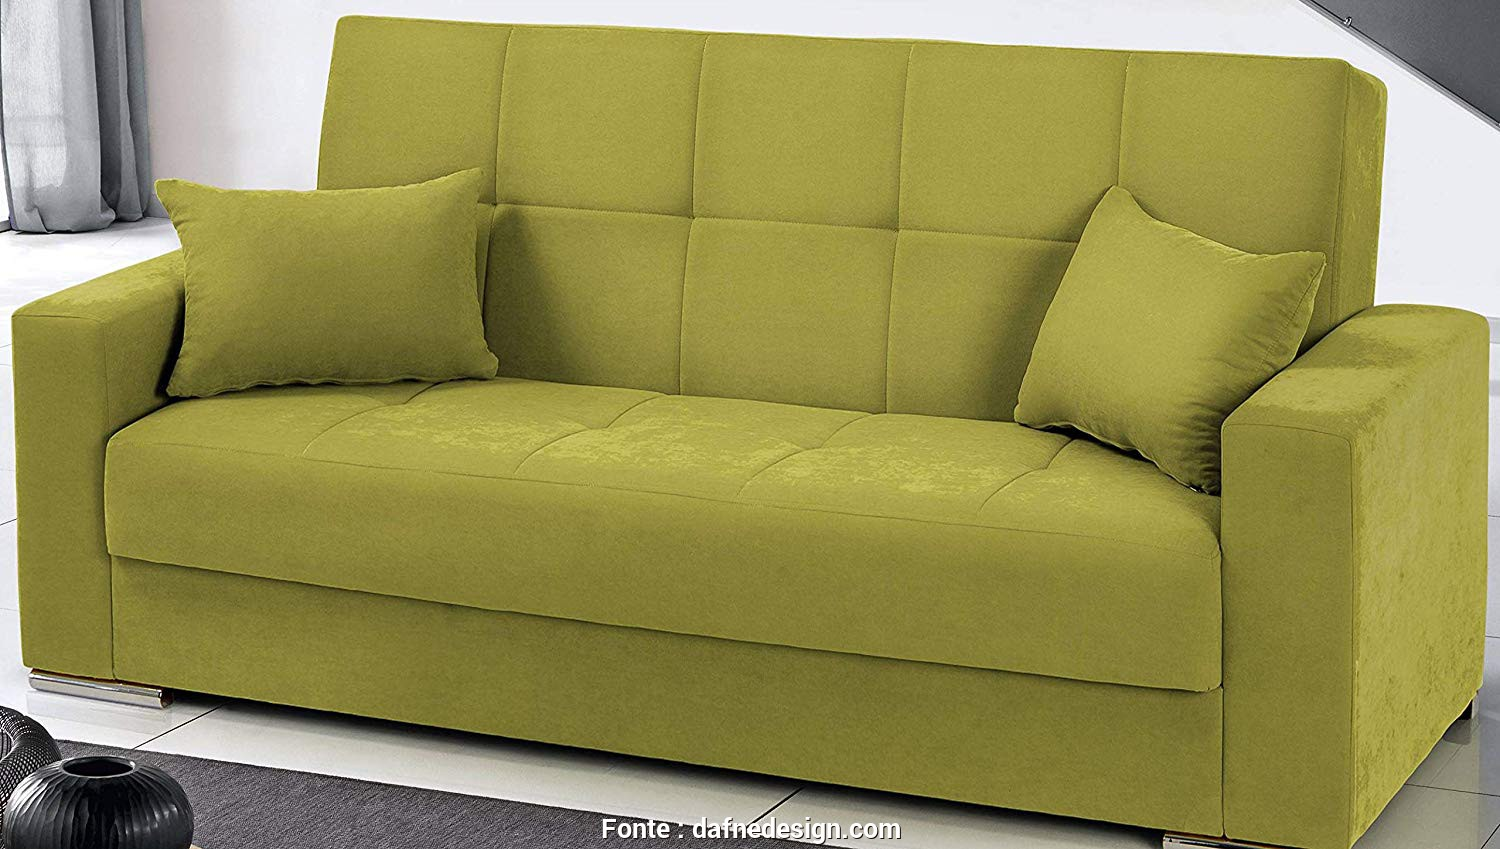 Divano Letto 3 Posti Design, Bellissima Dafnedesign.Com, Sofa, 3 Seats, Color: Green, Covering: Fabric, Function:,, Sofa, 3 Seats, Equipped With Storage Compartment Under, Seat